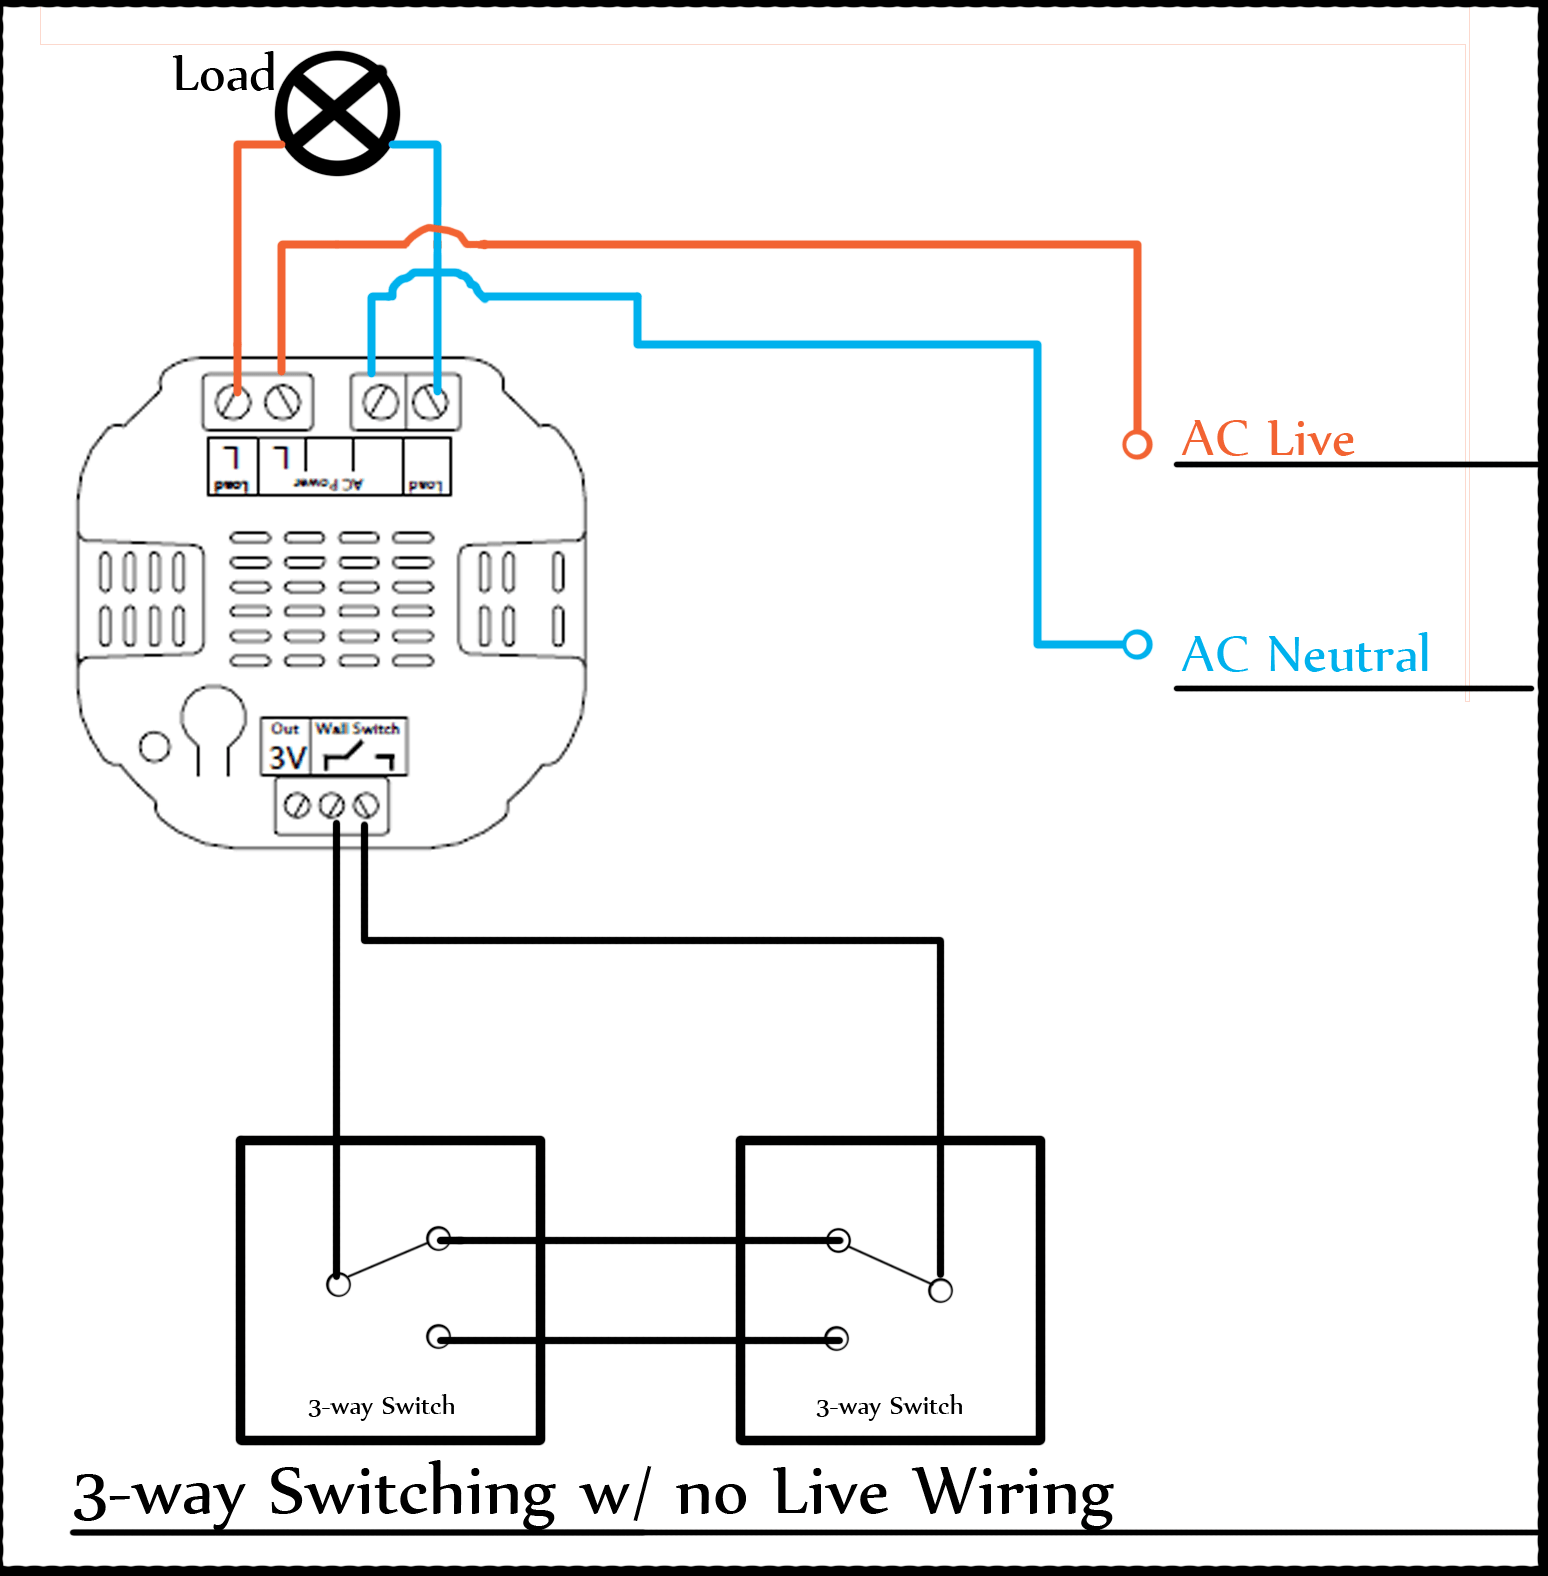 Differently Wired 3-Way switches, how to GE Z-Wave them